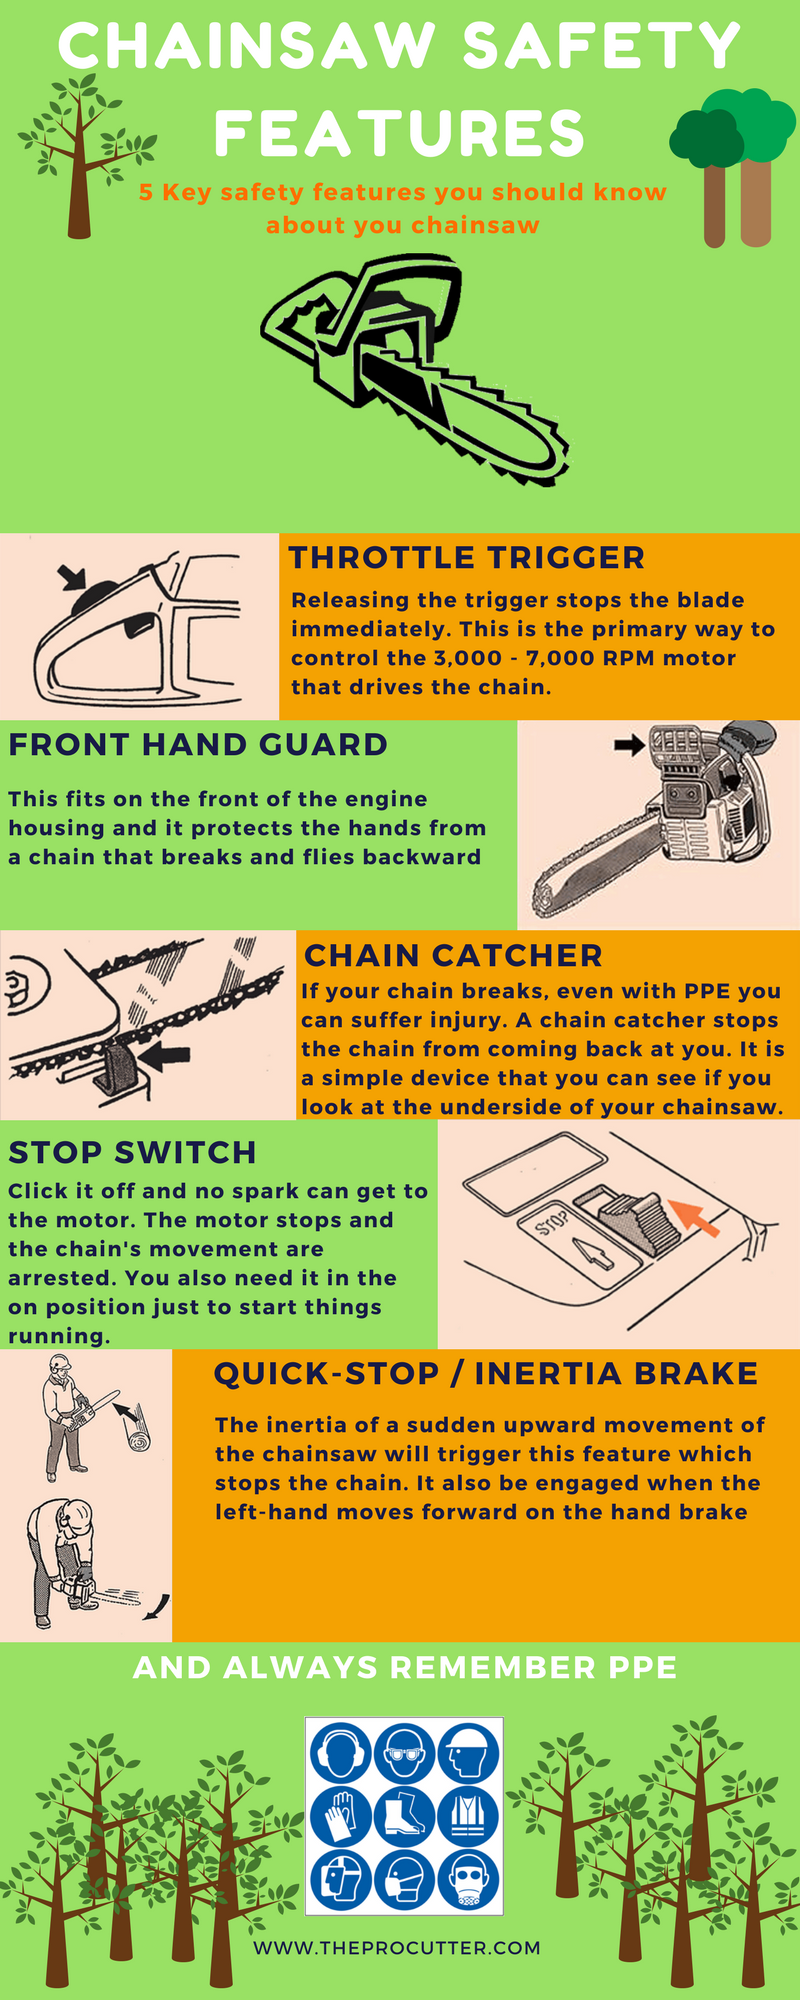 ChainSaw Safety - INFO GRAPHIC